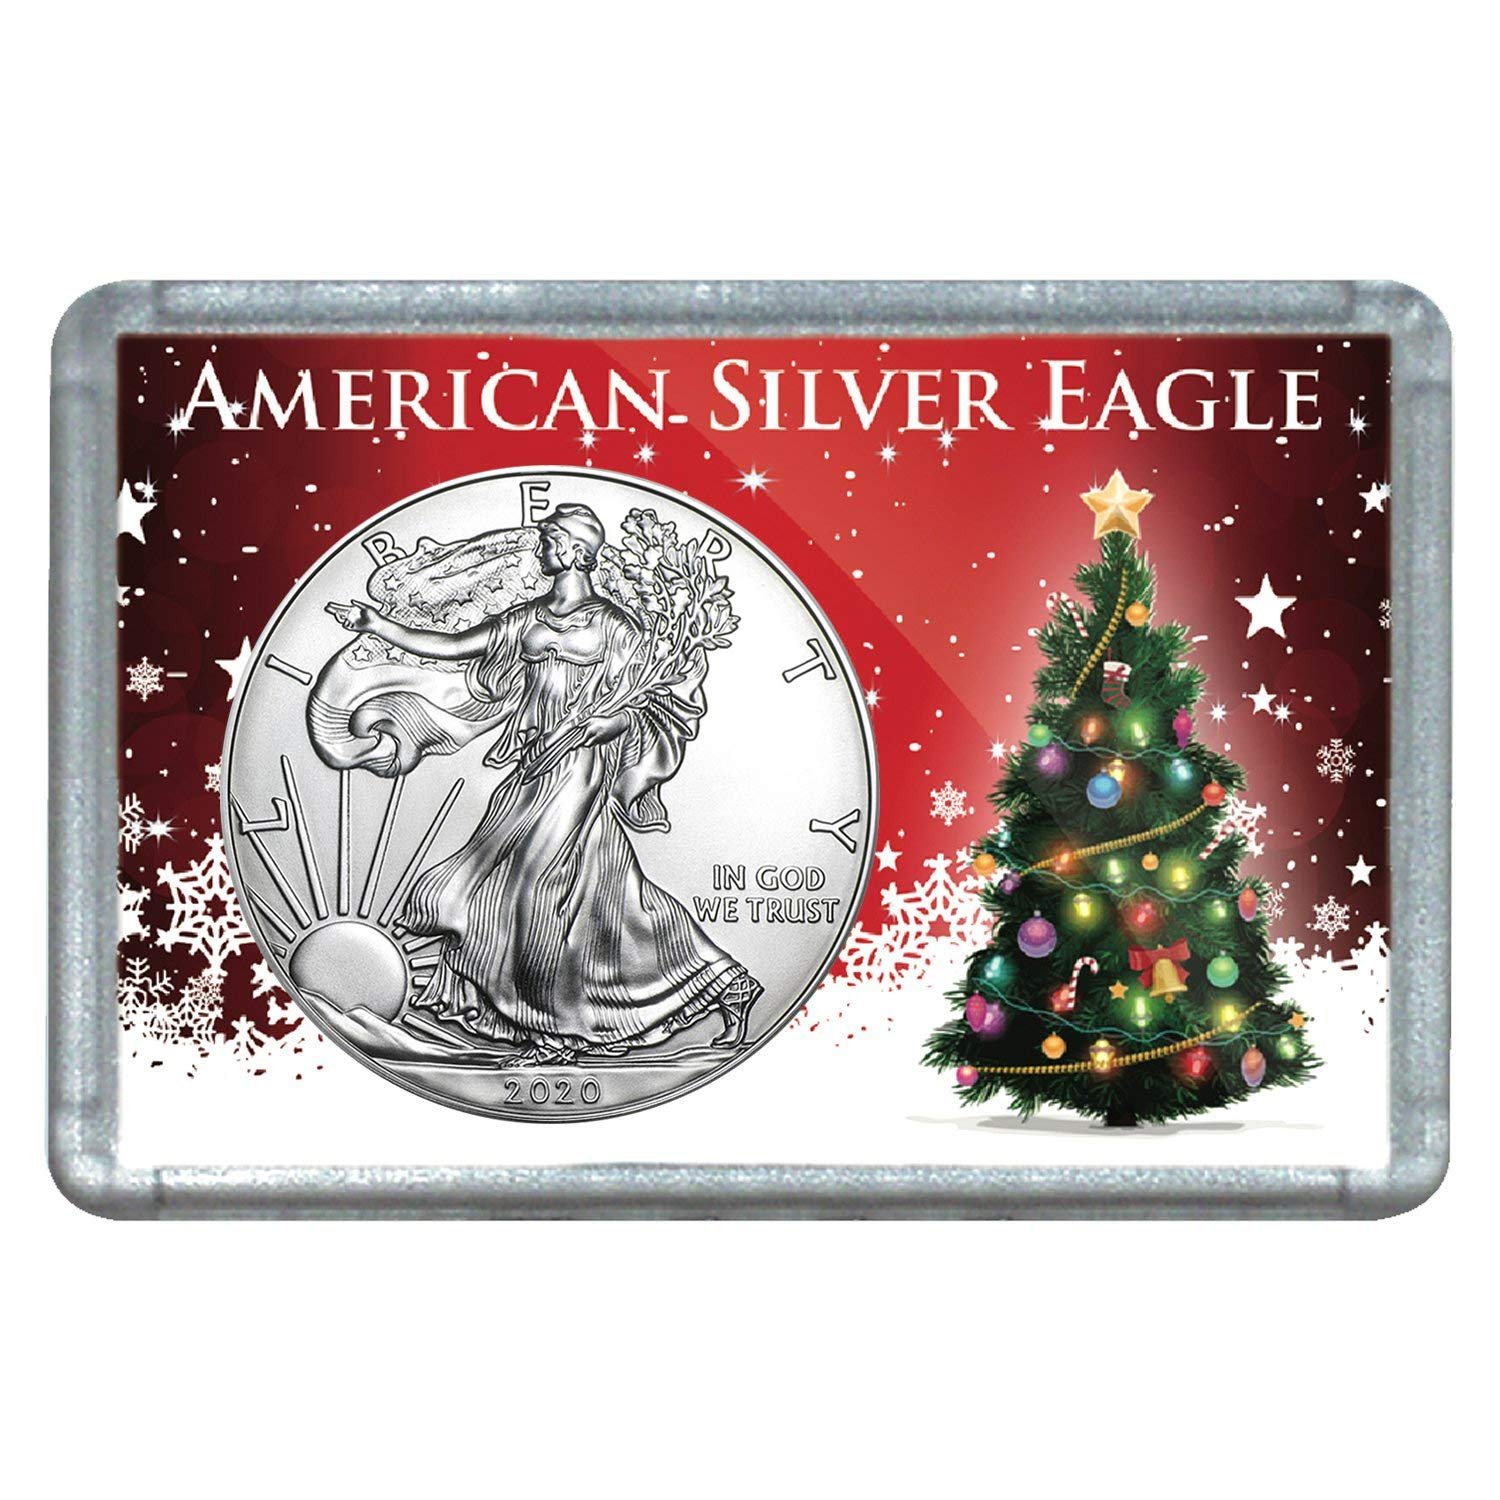 2020-1 Ounce American Silver Eagle in Christmas Tree Design Holiday Holder Dollar Uncirculated US Mint